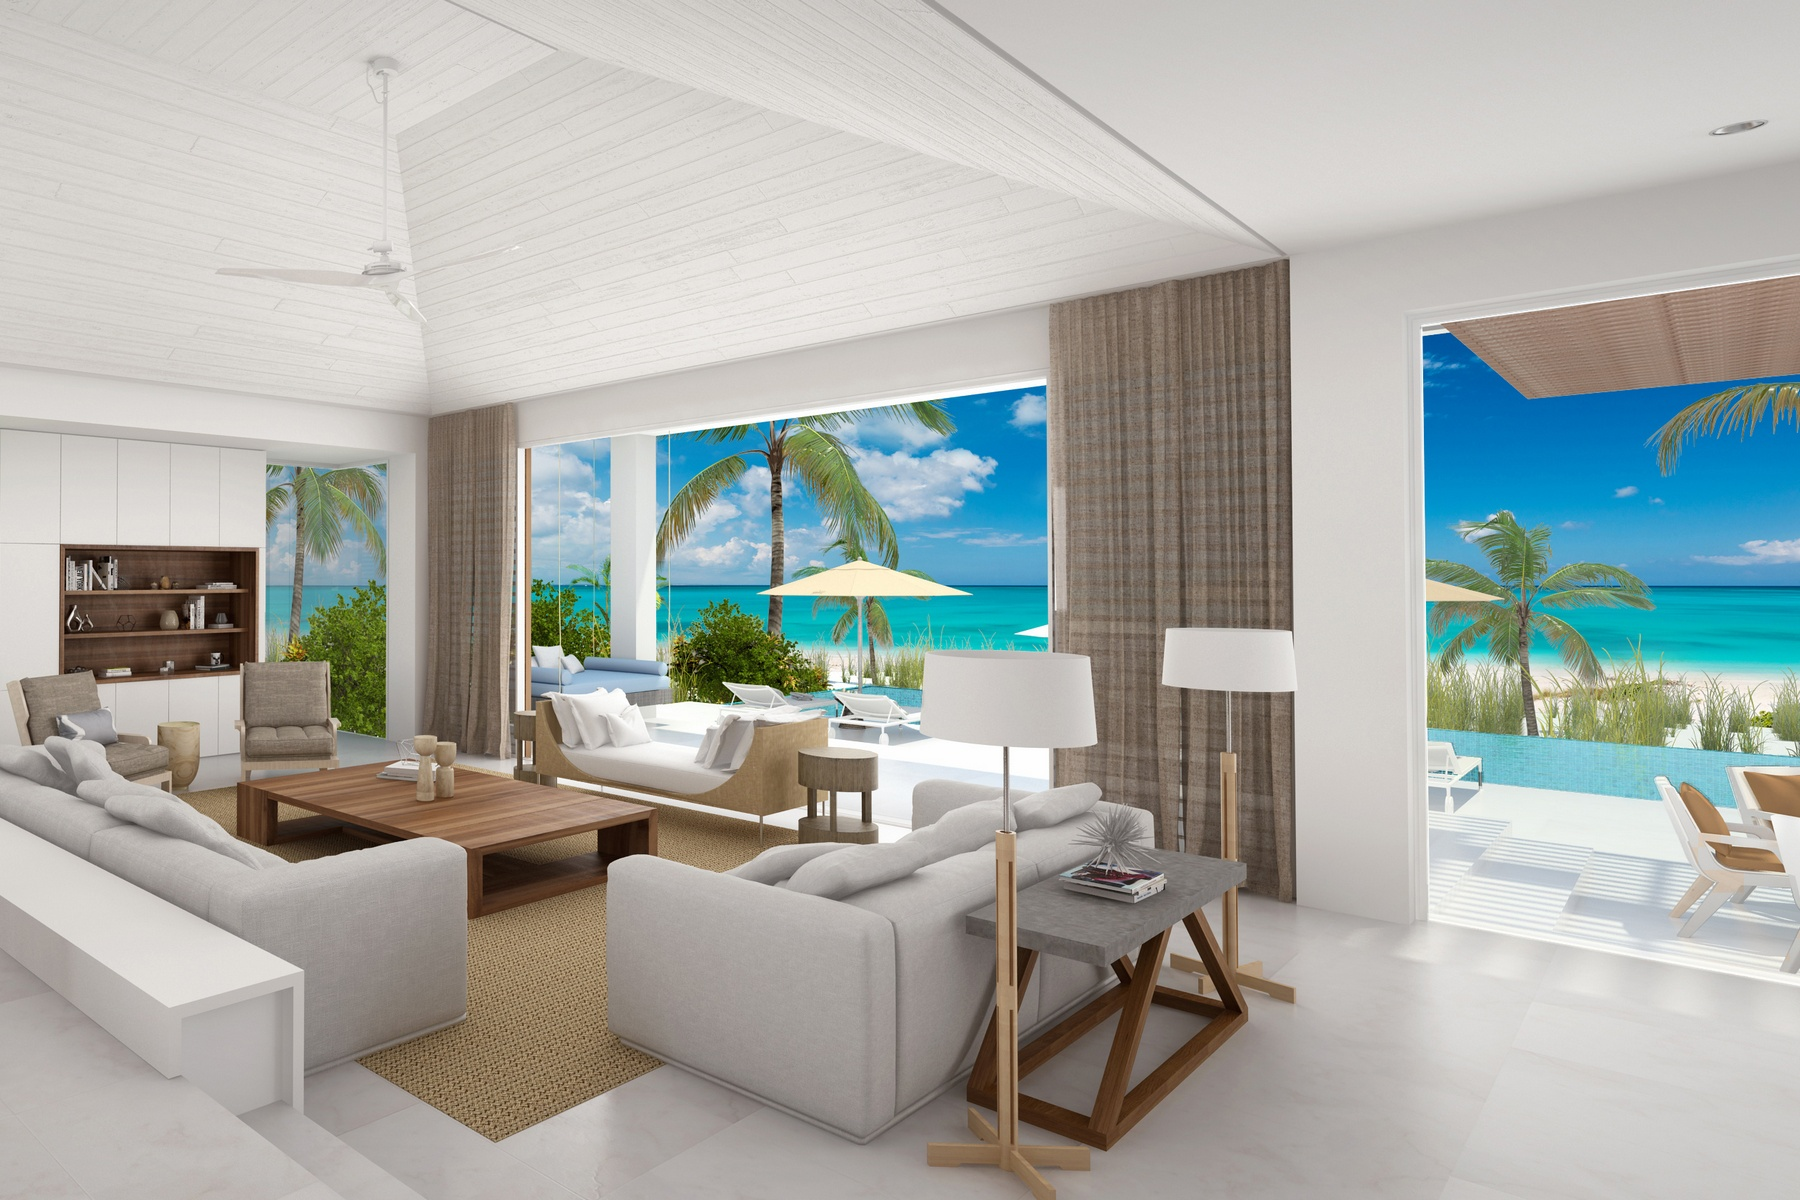 Single Family Home for Sale at BEACH ENCLAVE GRACE BAY Design A Oceanview Grace Bay, TKCA 1ZZ Turks And Caicos Islands